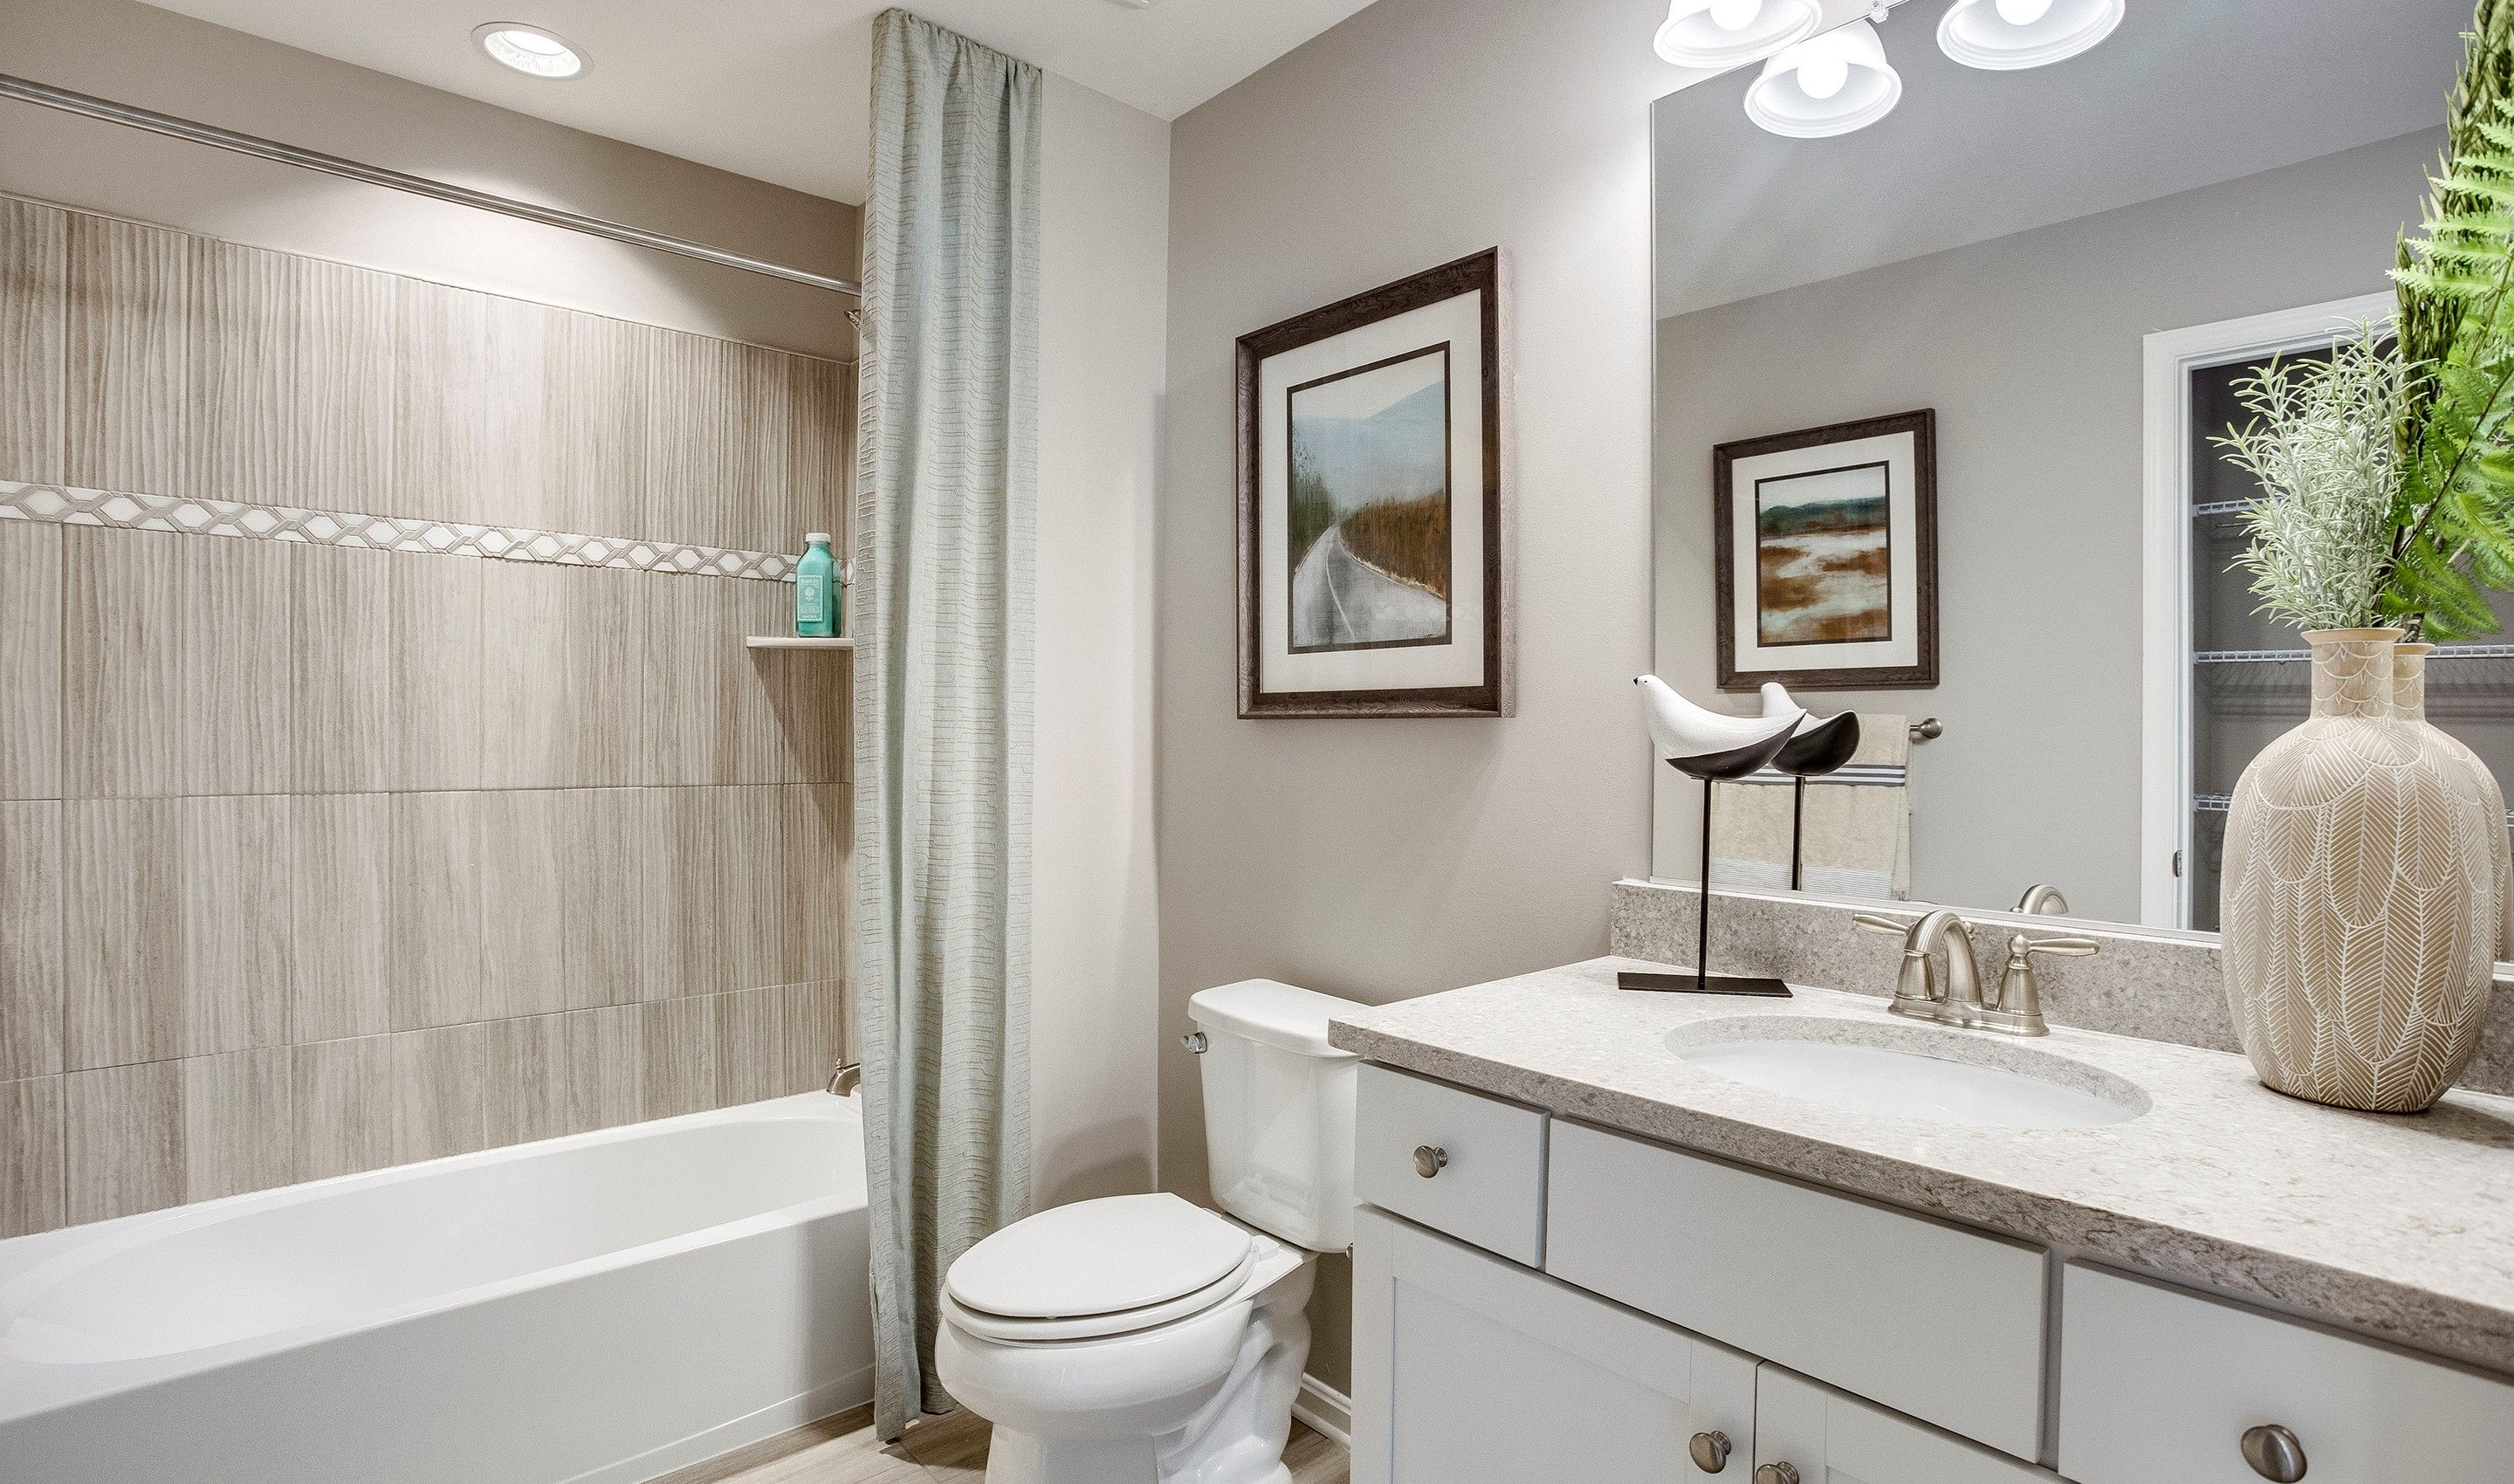 Bathroom featured in the Westminster - Basement By K. Hovnanian® Homes in Washington, MD